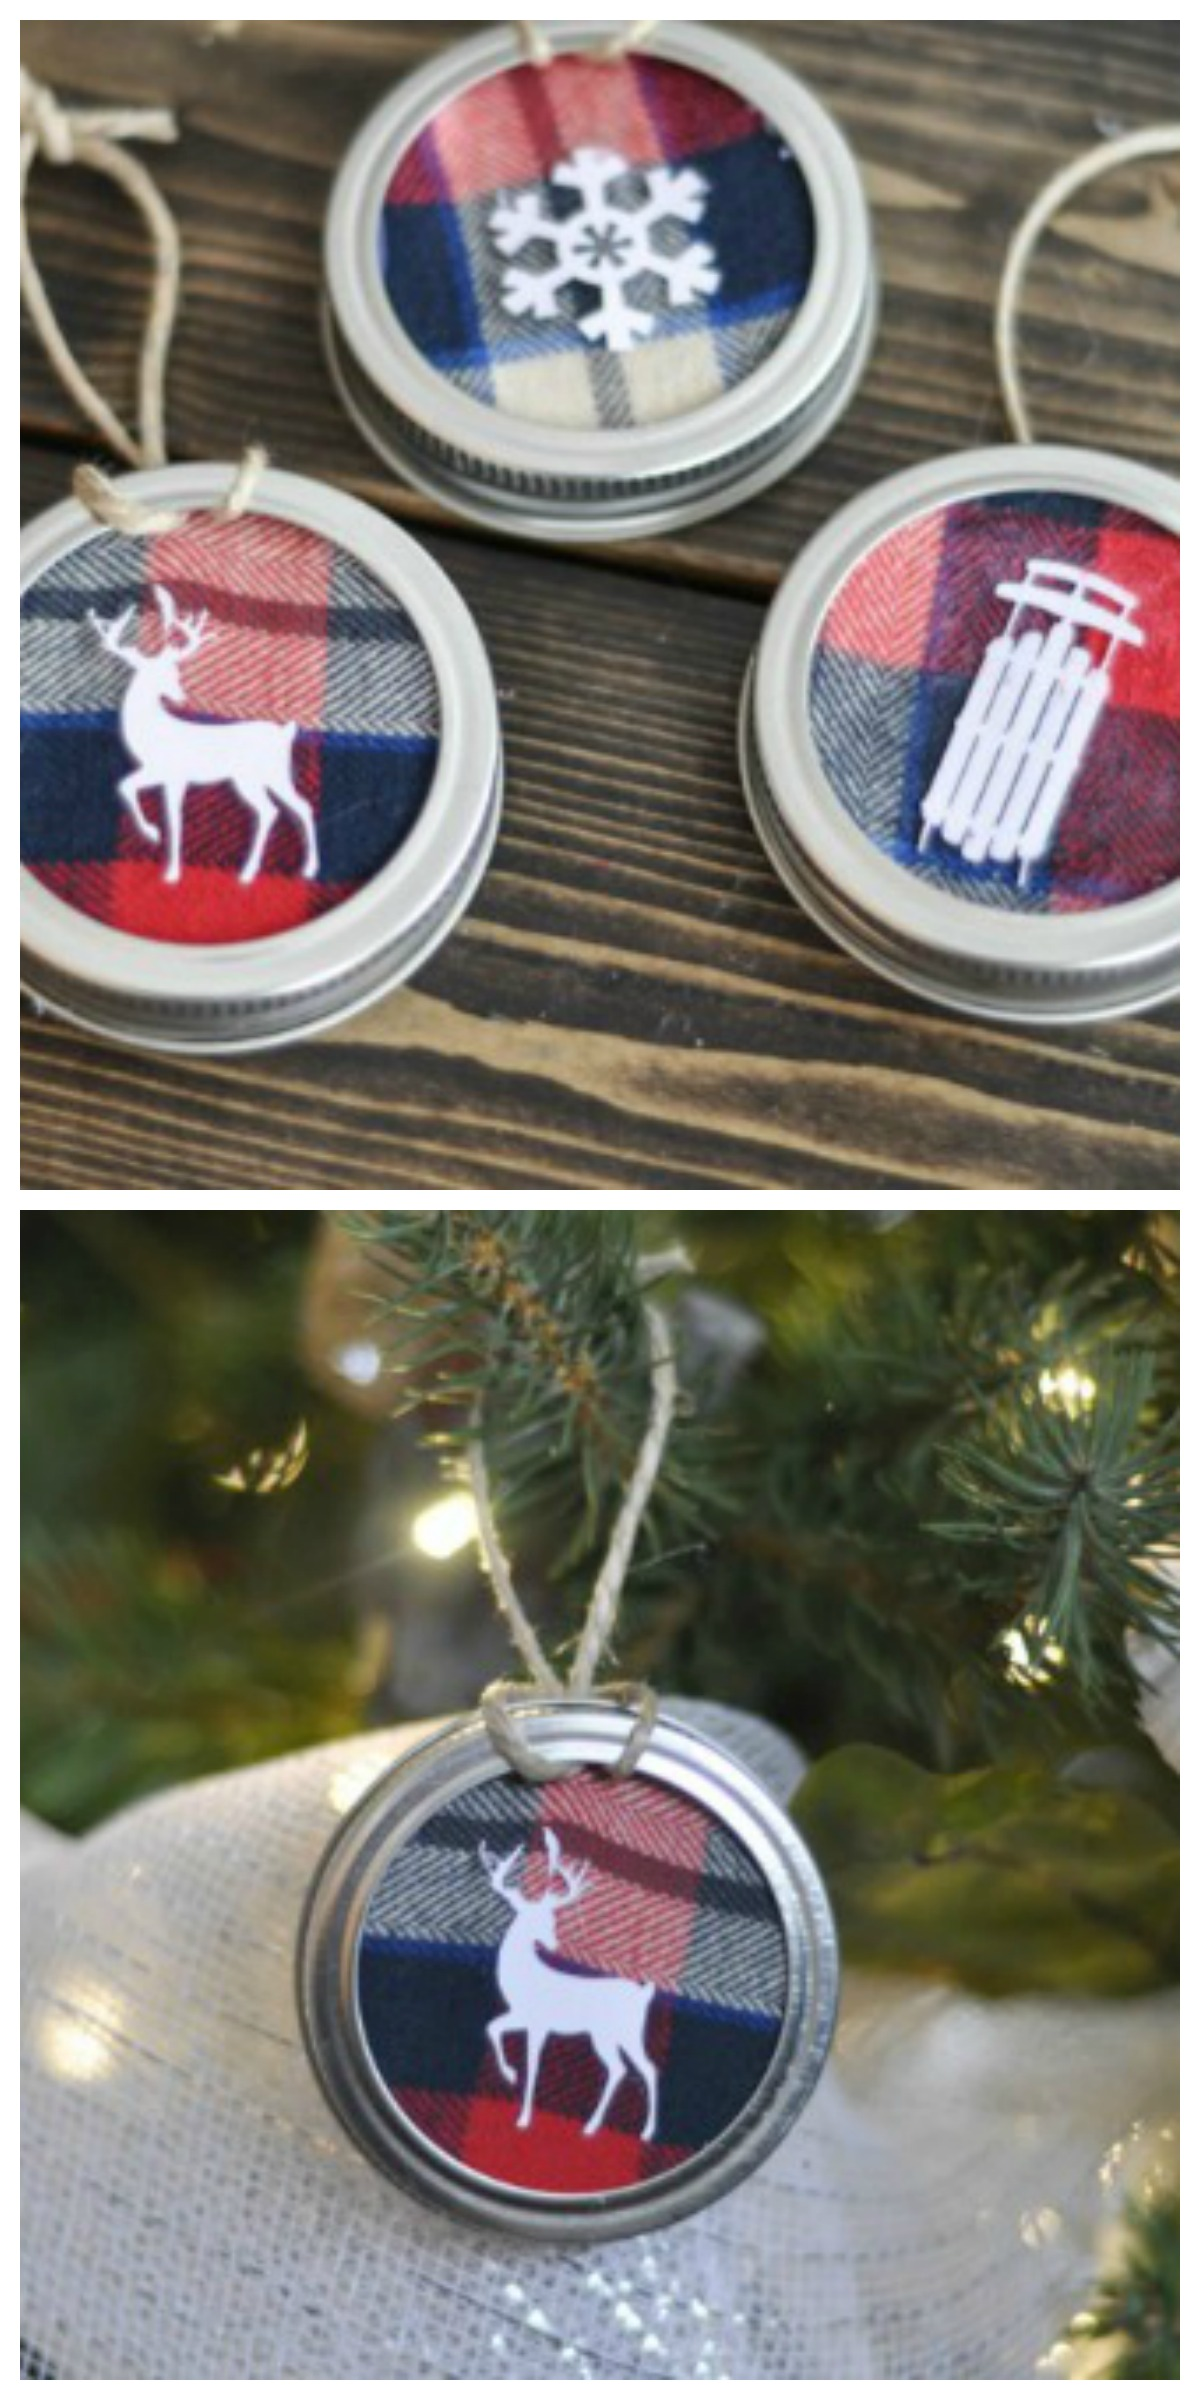 AD-Magical-Ways-To-Use-Mason-Jars-This-Christmas-02